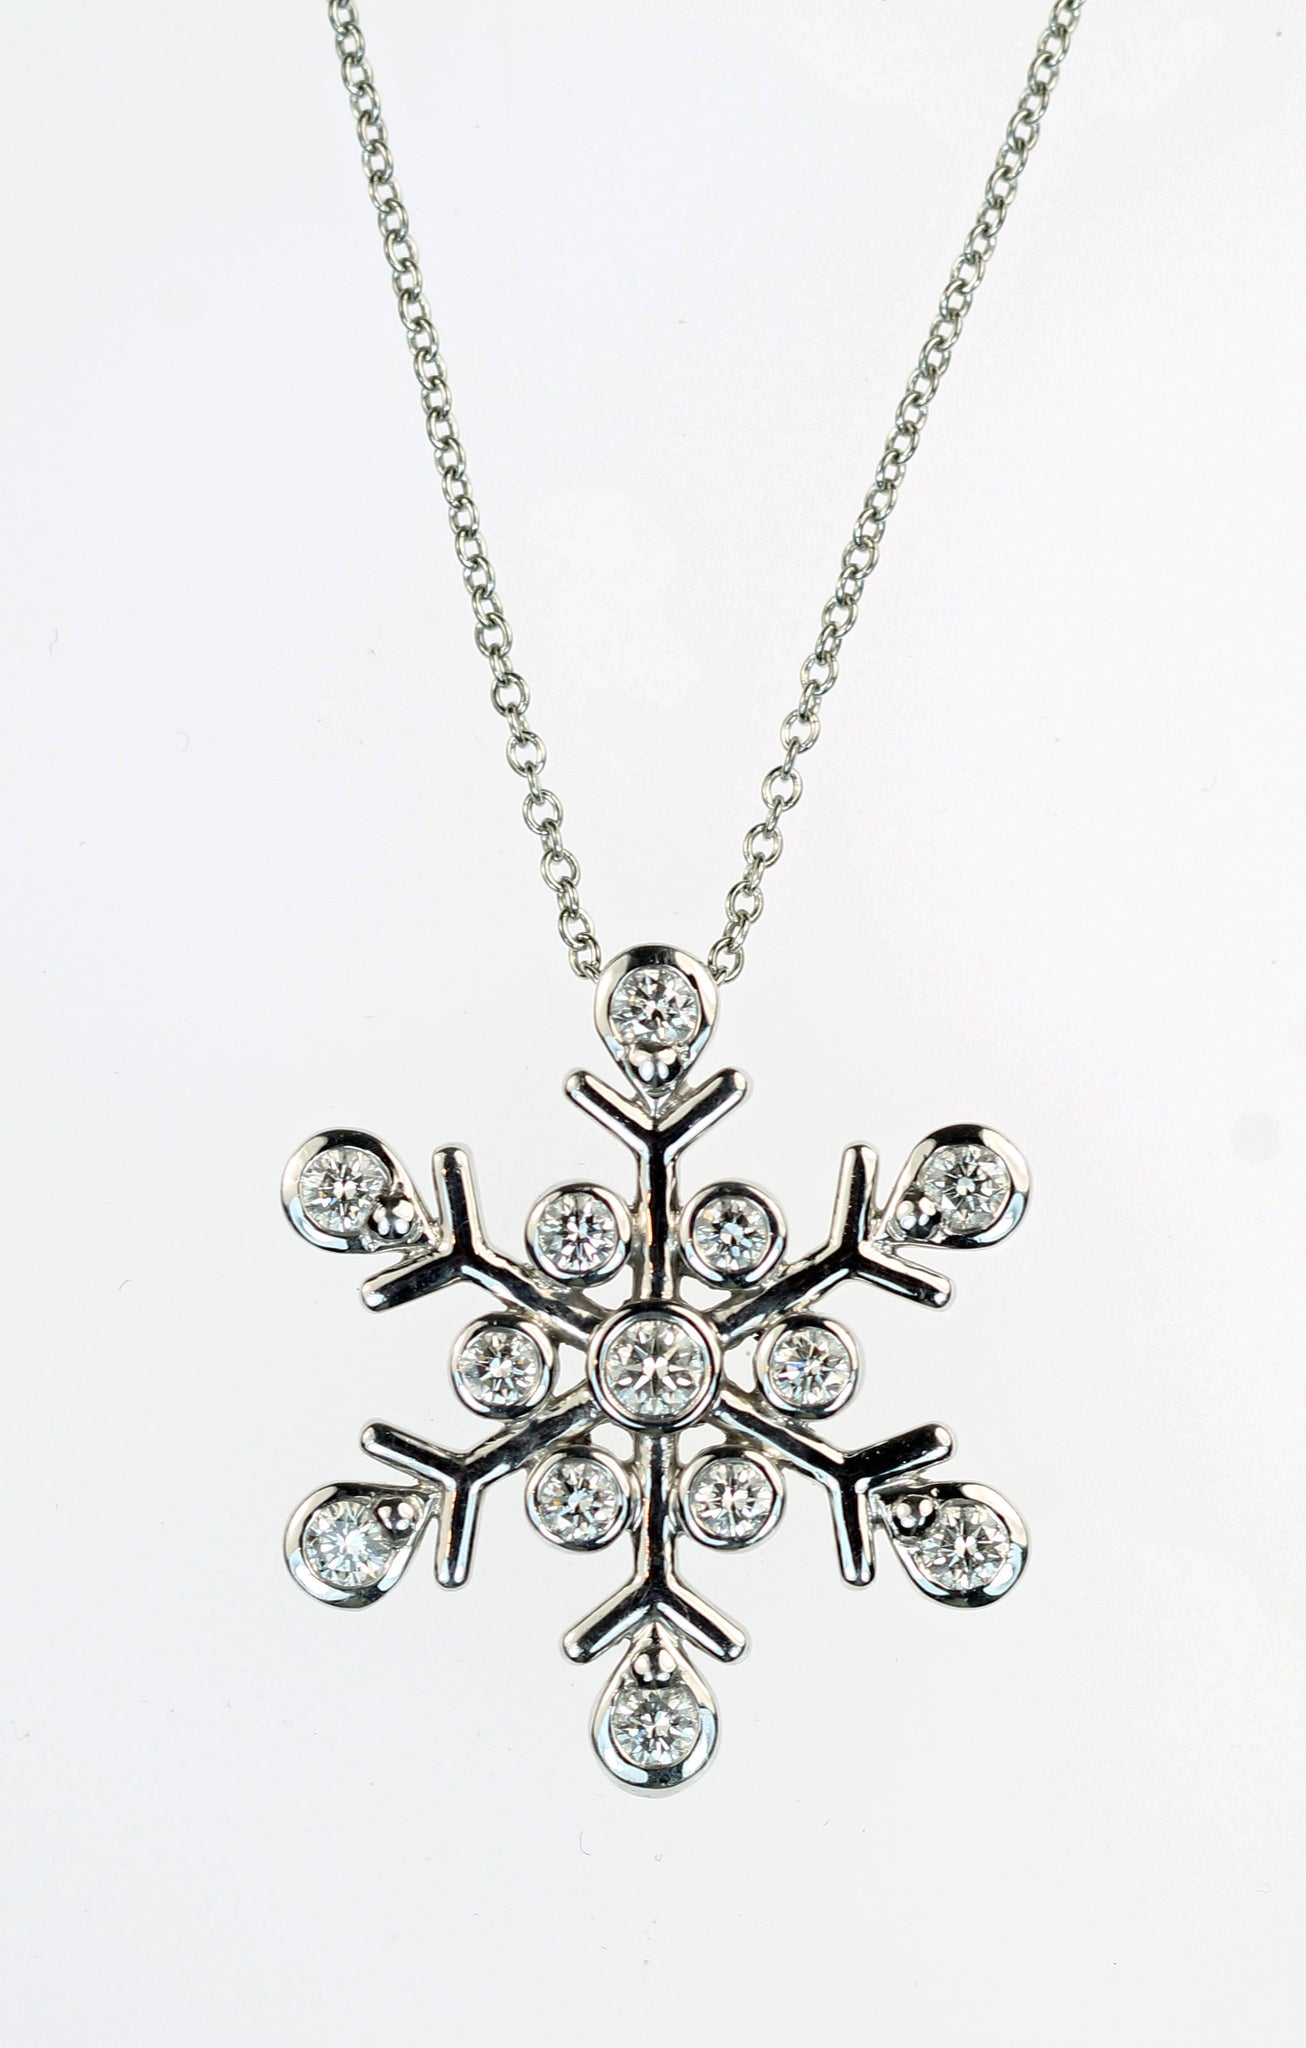 Vintage Tiffany Snowflake Diamond Pendant, SOLD